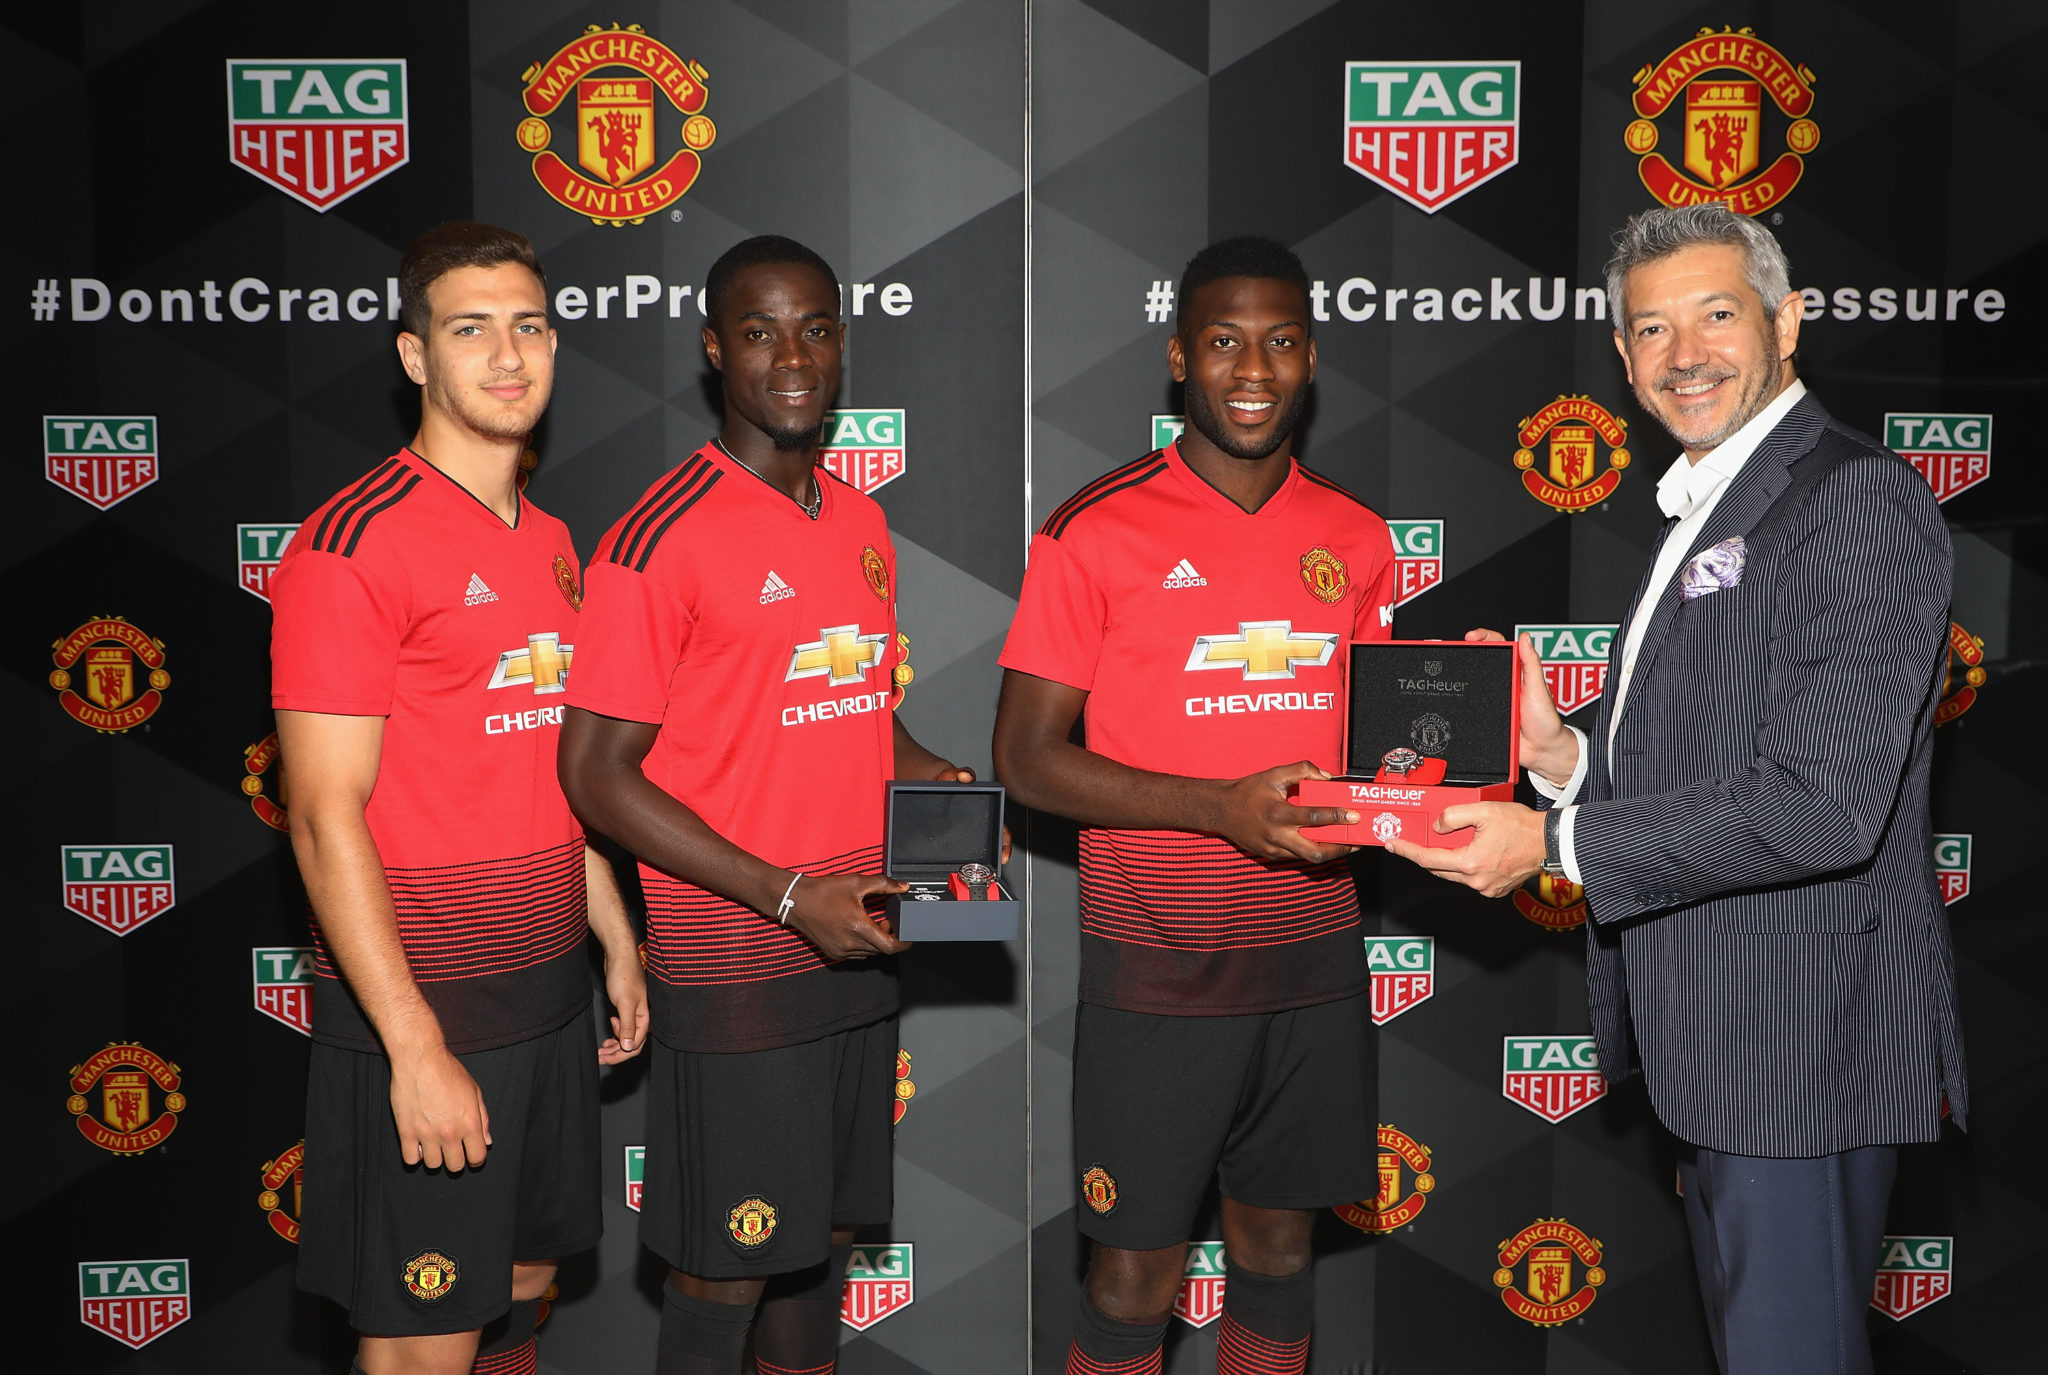 TAG Heuer Celebrates Launch Of New Manchester United Watches With Nemanja Matic And Peter Schmeichel